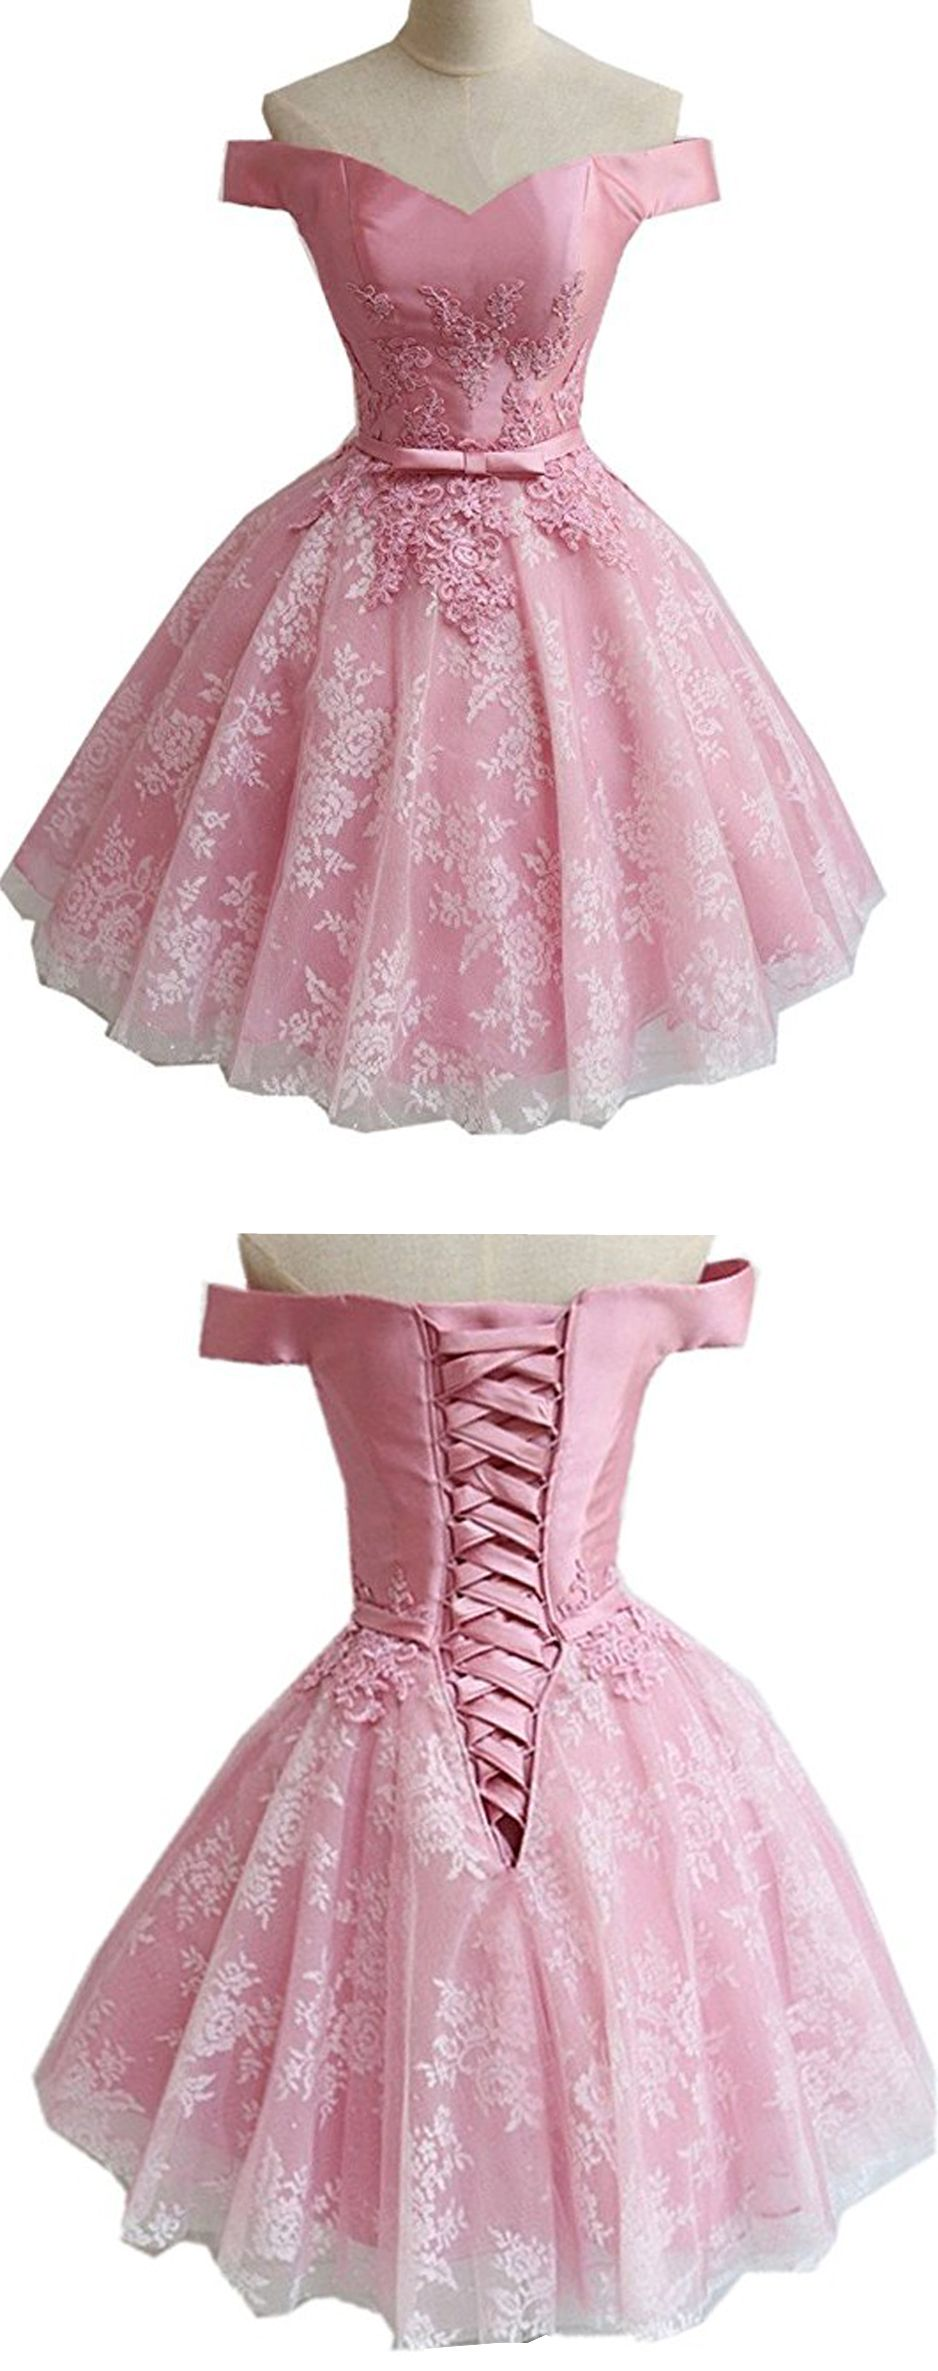 Ball gown offtheshoulder short pink homecoming dress with